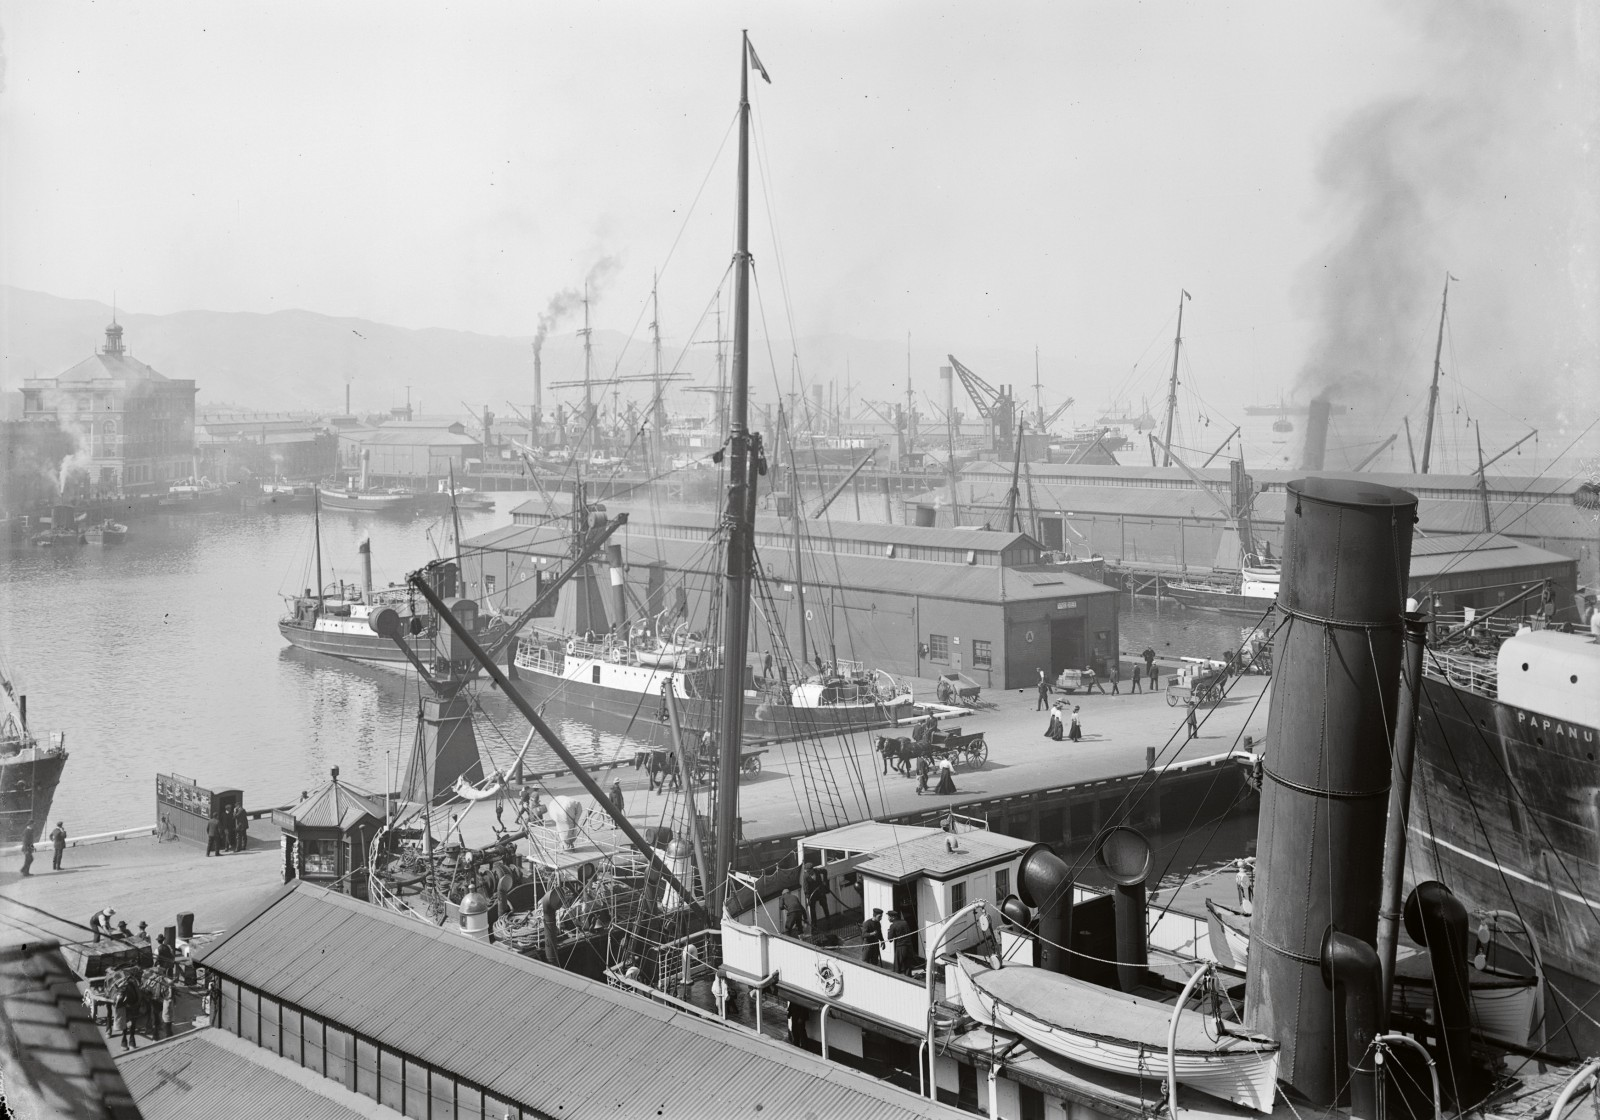 The bustle and news associated with arriving and departing vessels and their cargoes were a source of interest and free entertainment for all. The wharves were also public thoroughfares and open to everyone.